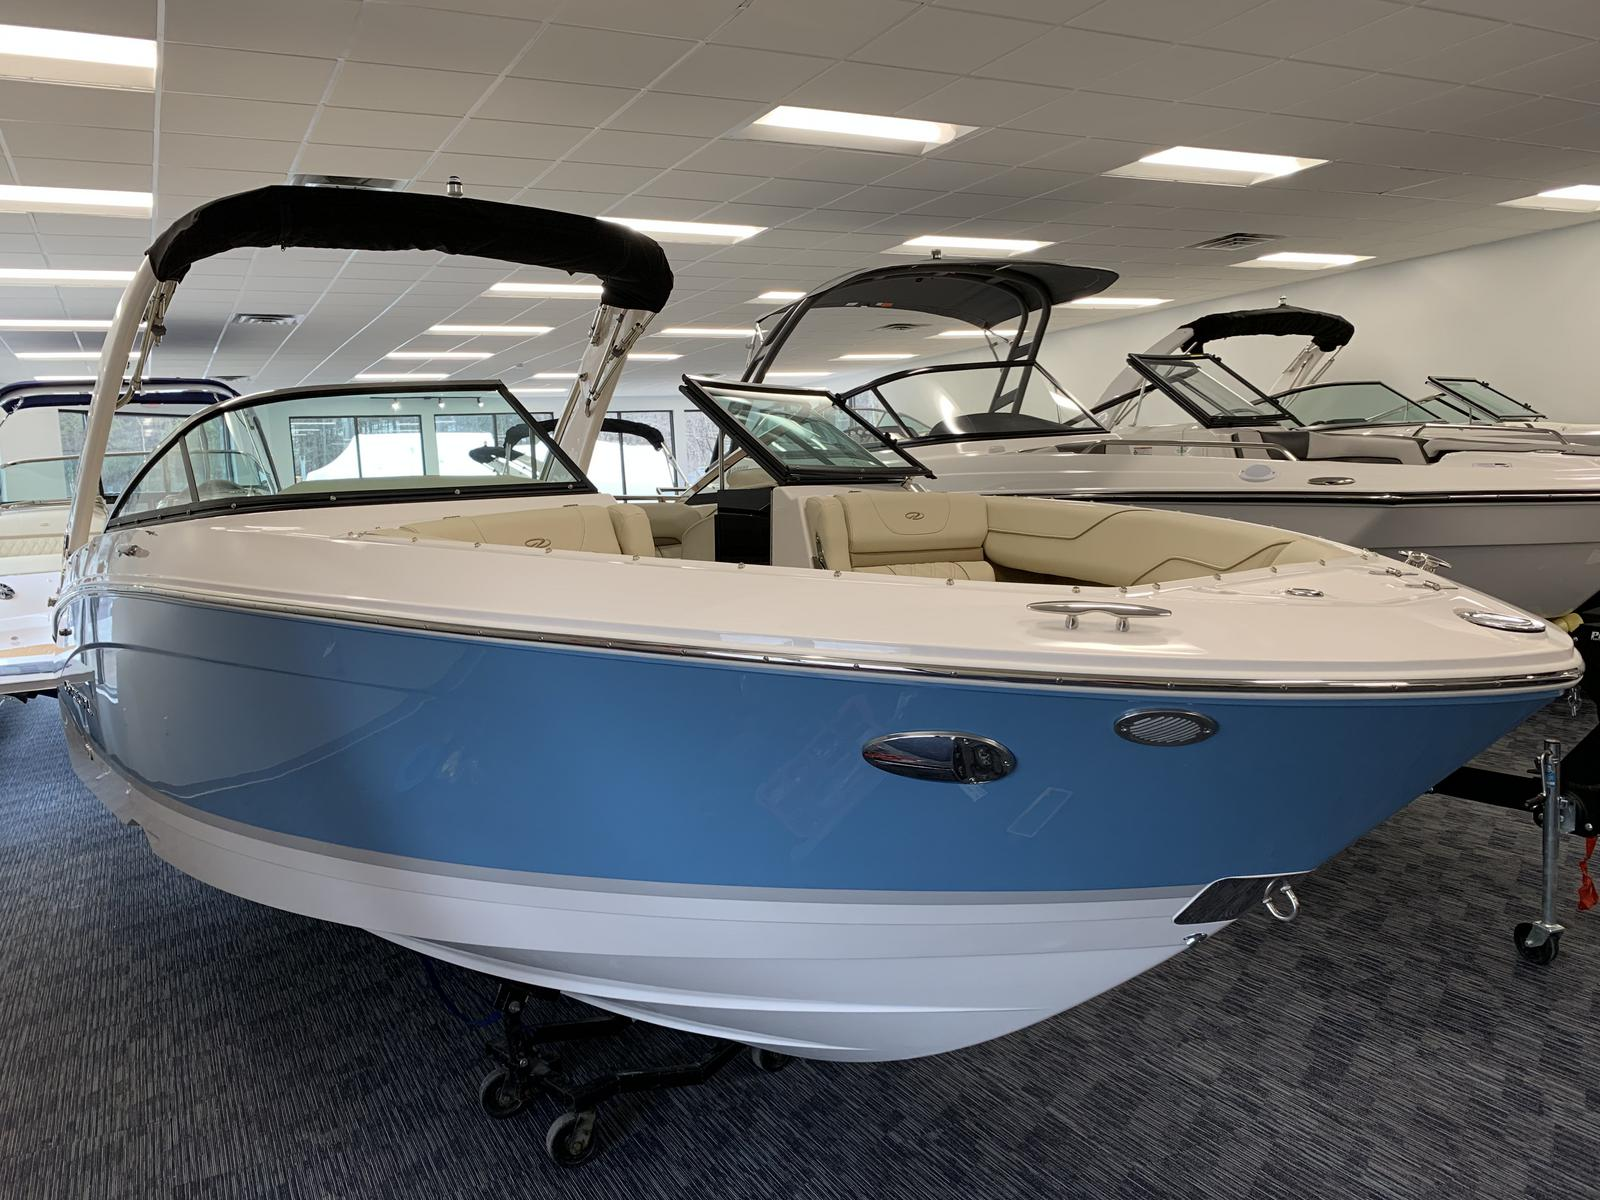 2019 Regal LS4 for sale in Colchester, VT  Saba Marine